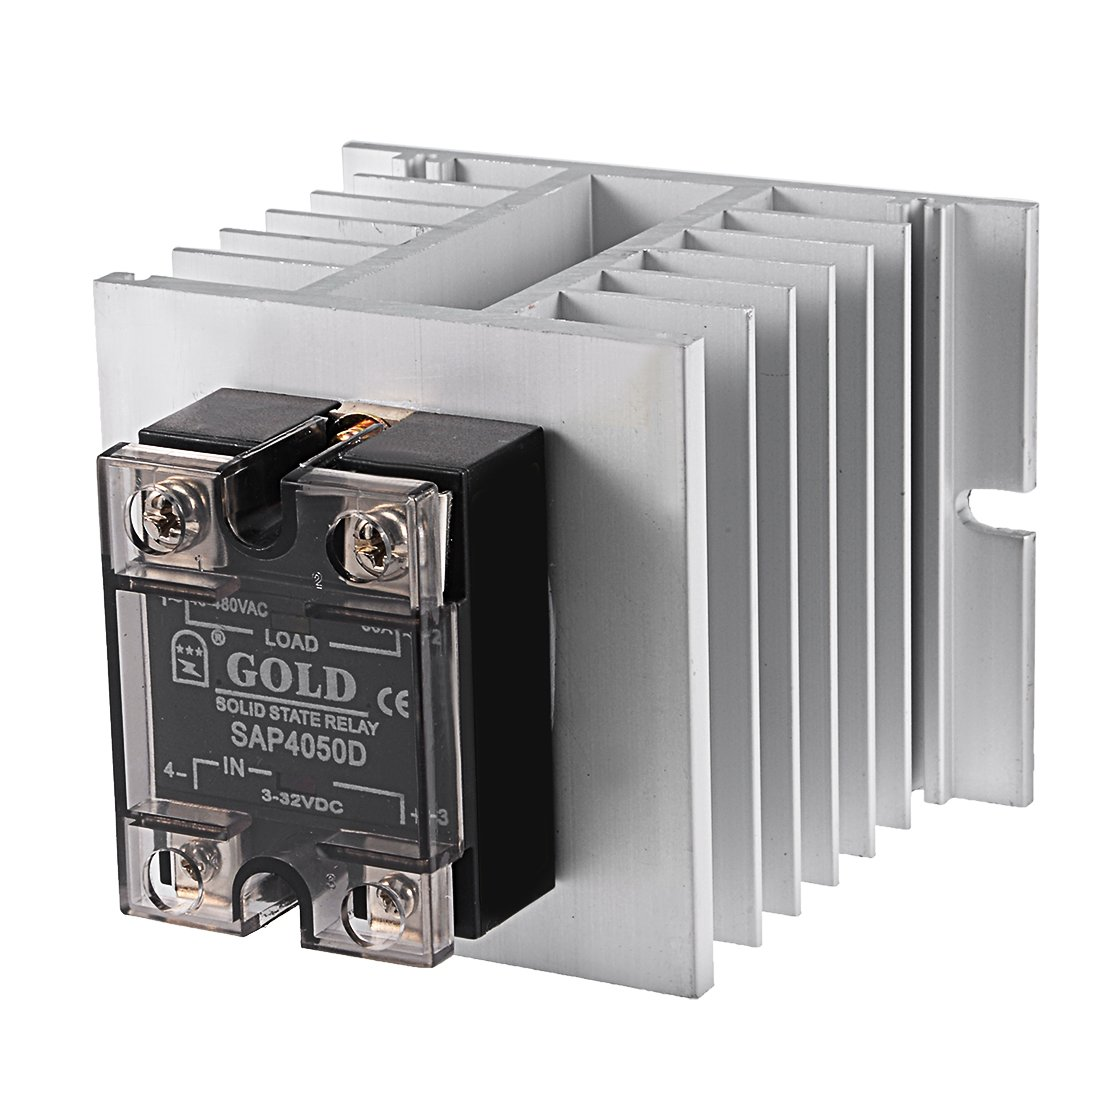 uxcell SAP4050D+G80 3-32VDC to 40-480VAC 50A Single Phase Solid State Relay Module DC to AC